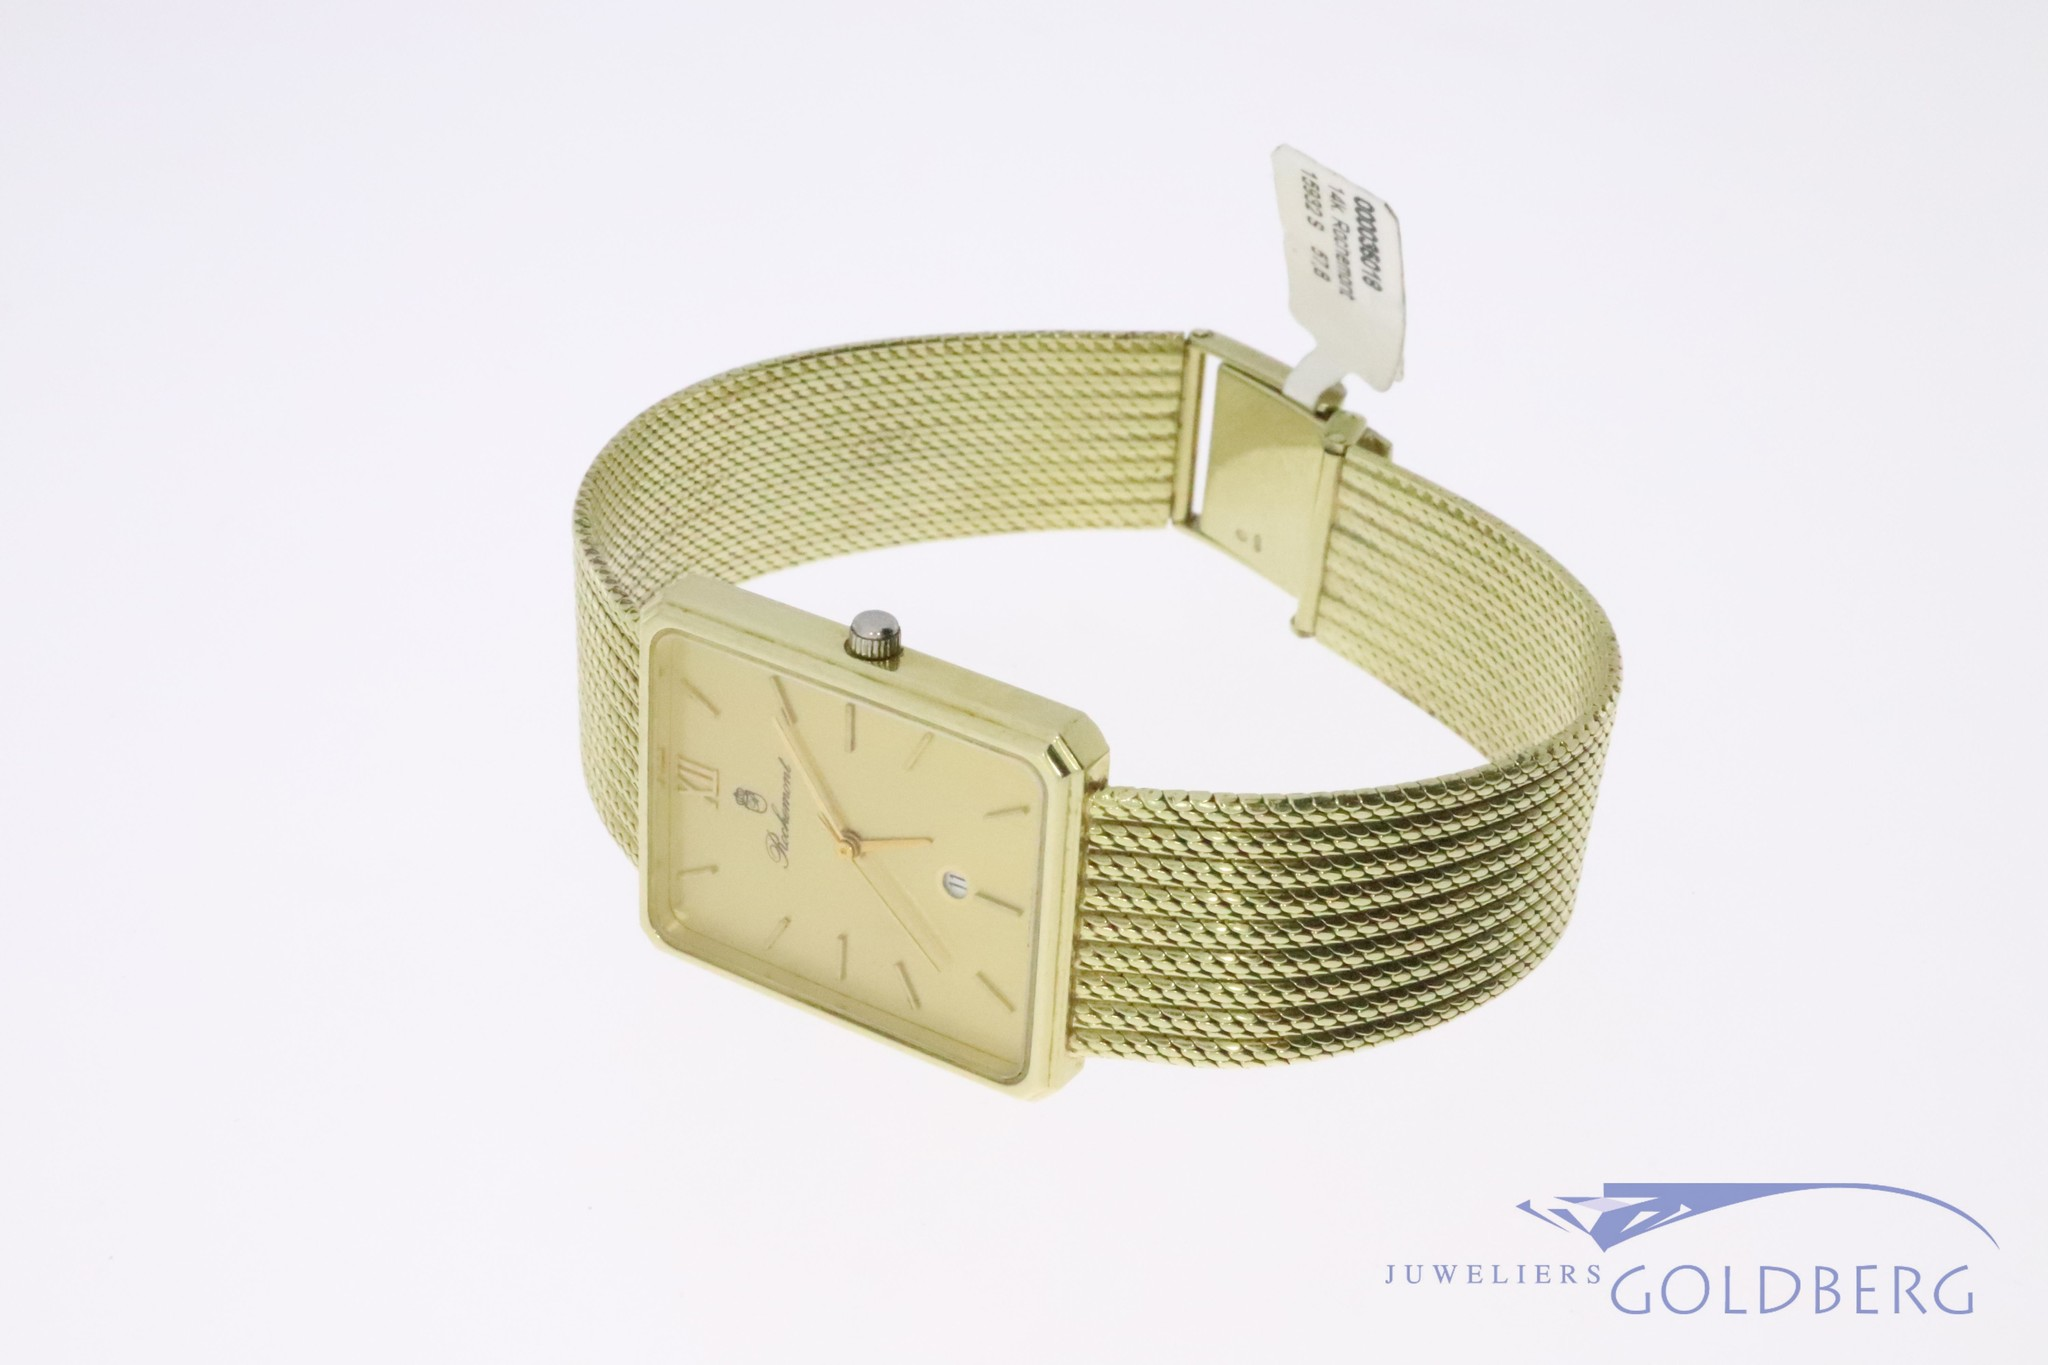 14k gold Rochemont watch with gold color dial